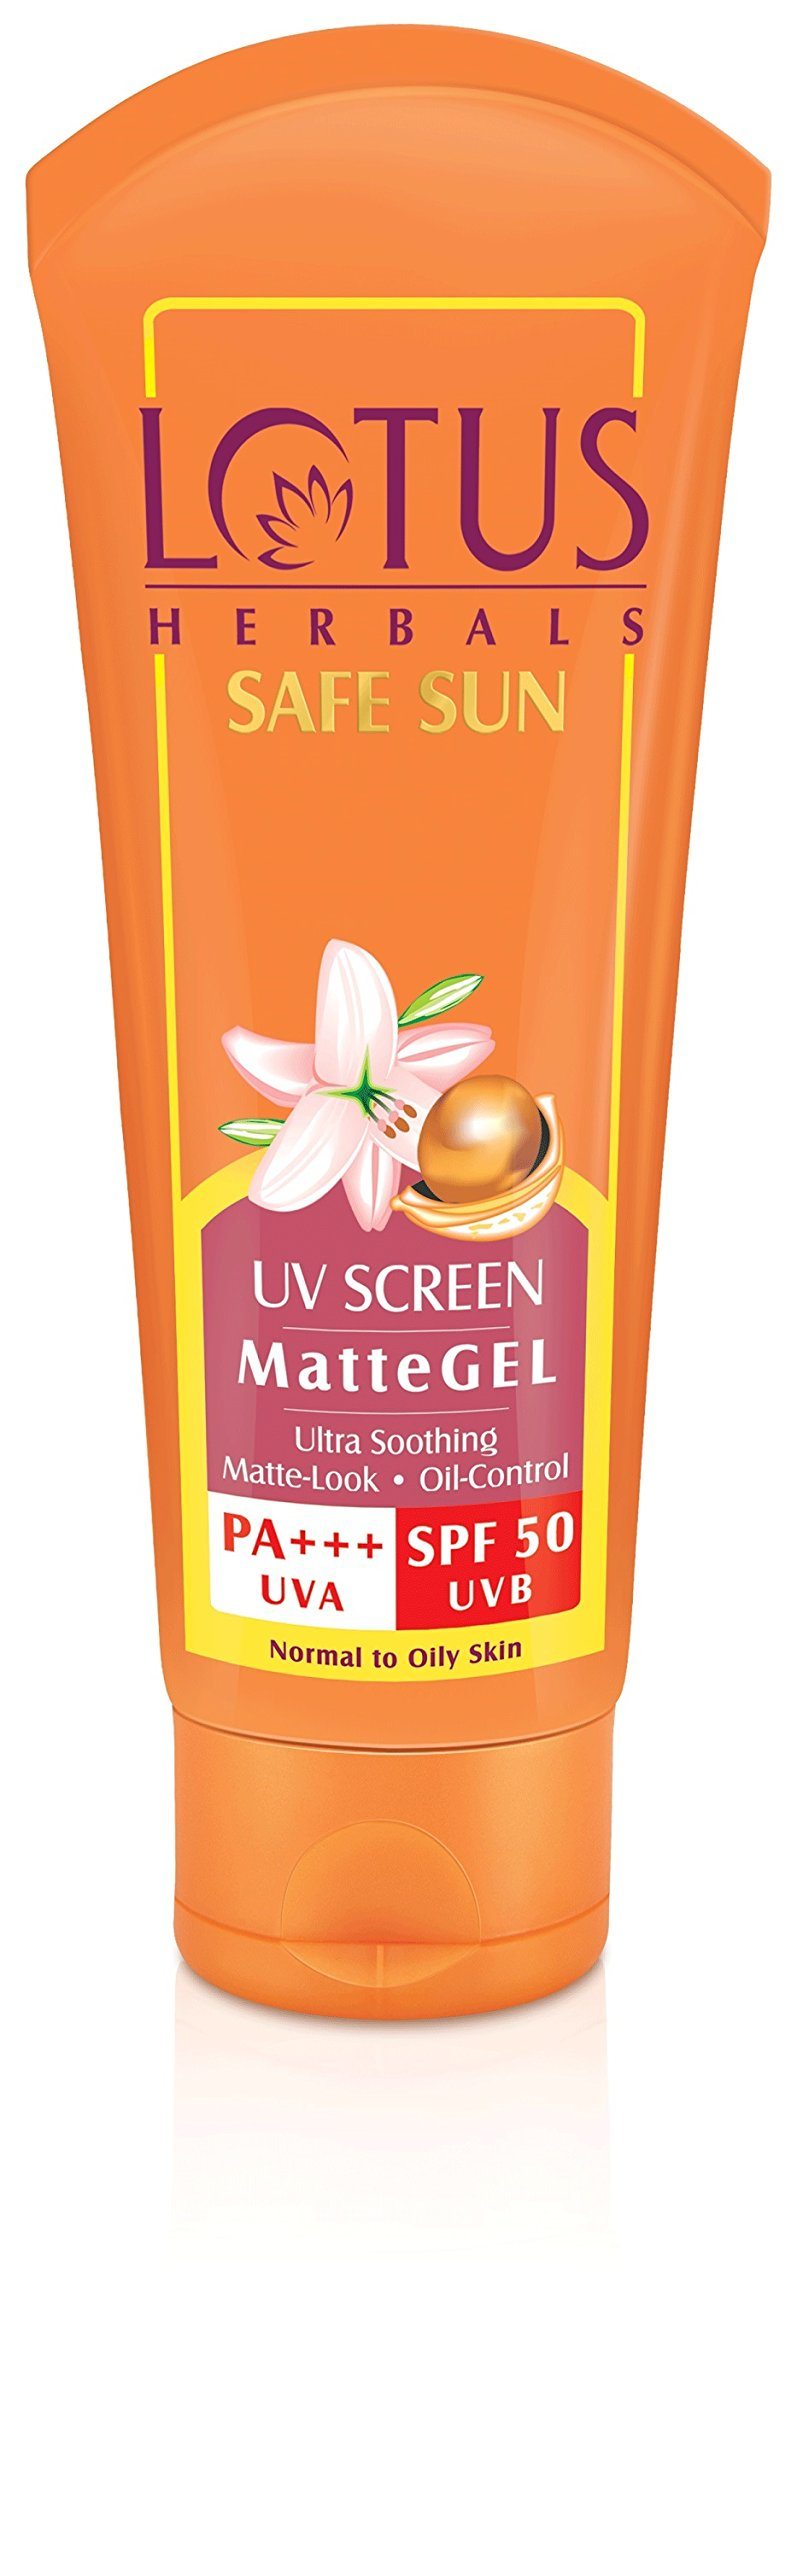 Lotus Herbals Safe Sun UV Screen Matte Gel, SPF 50, 100g product image